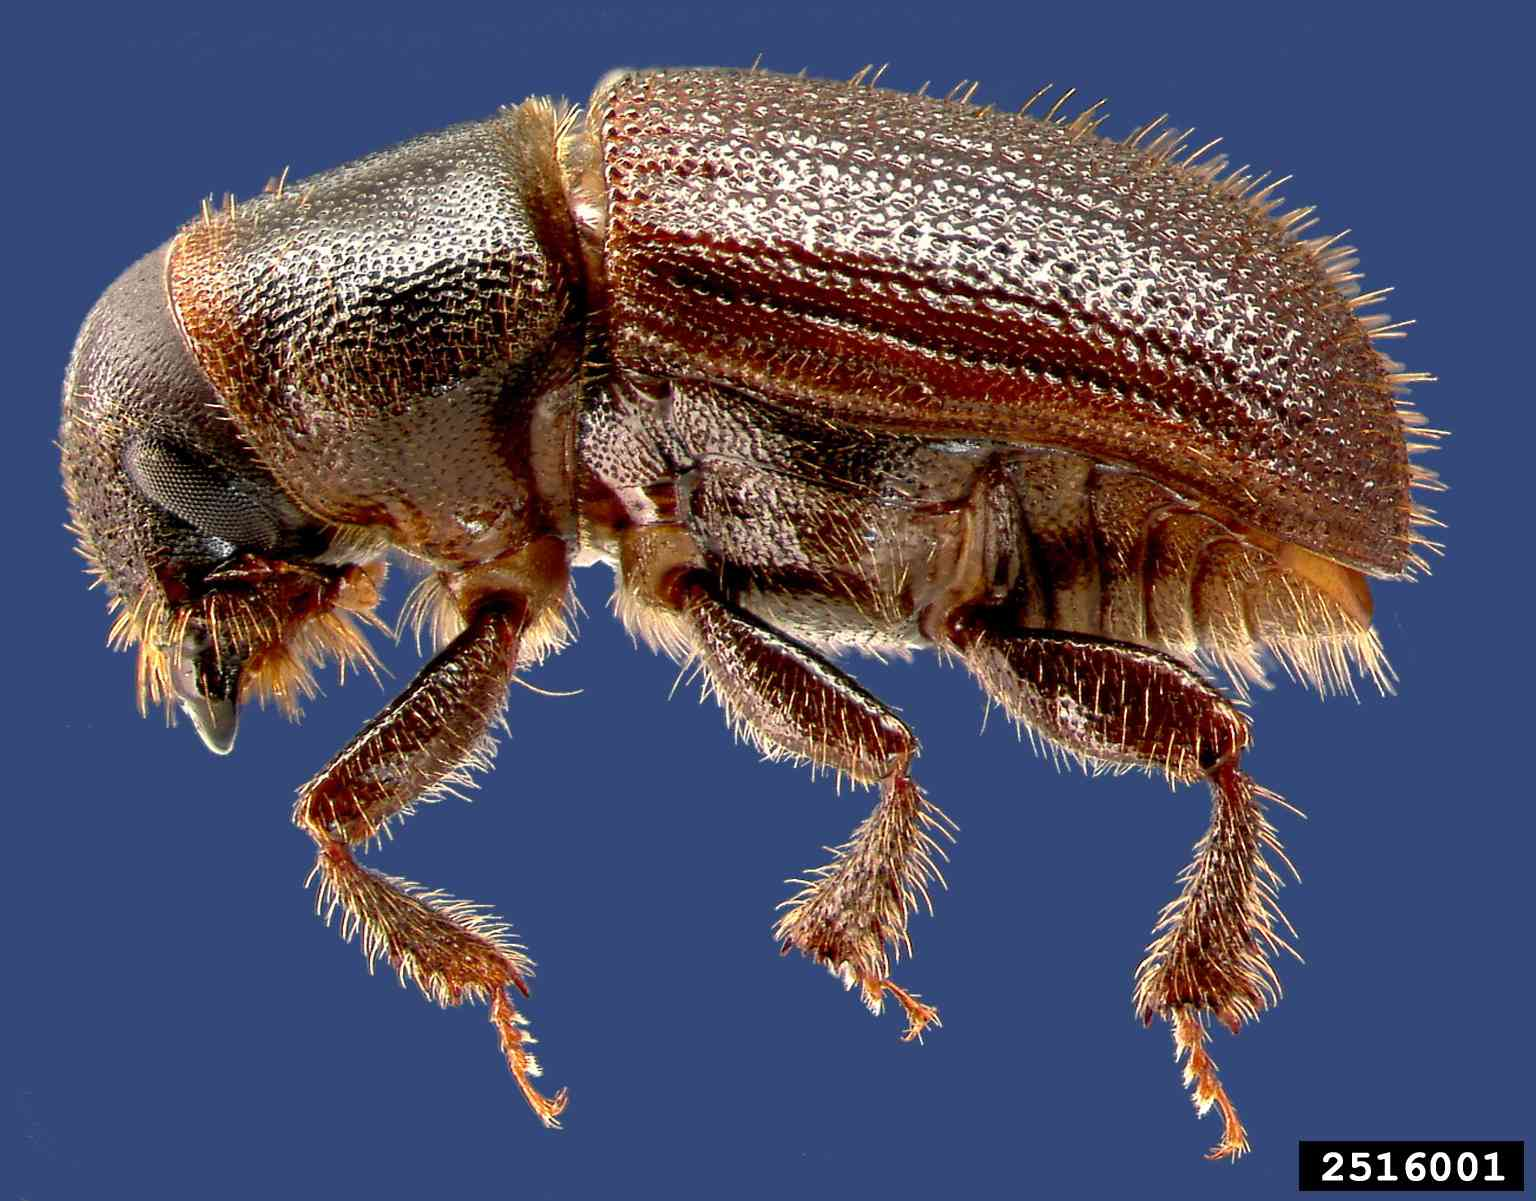 An Index of 22 Common Insect Pests Harmful to Trees